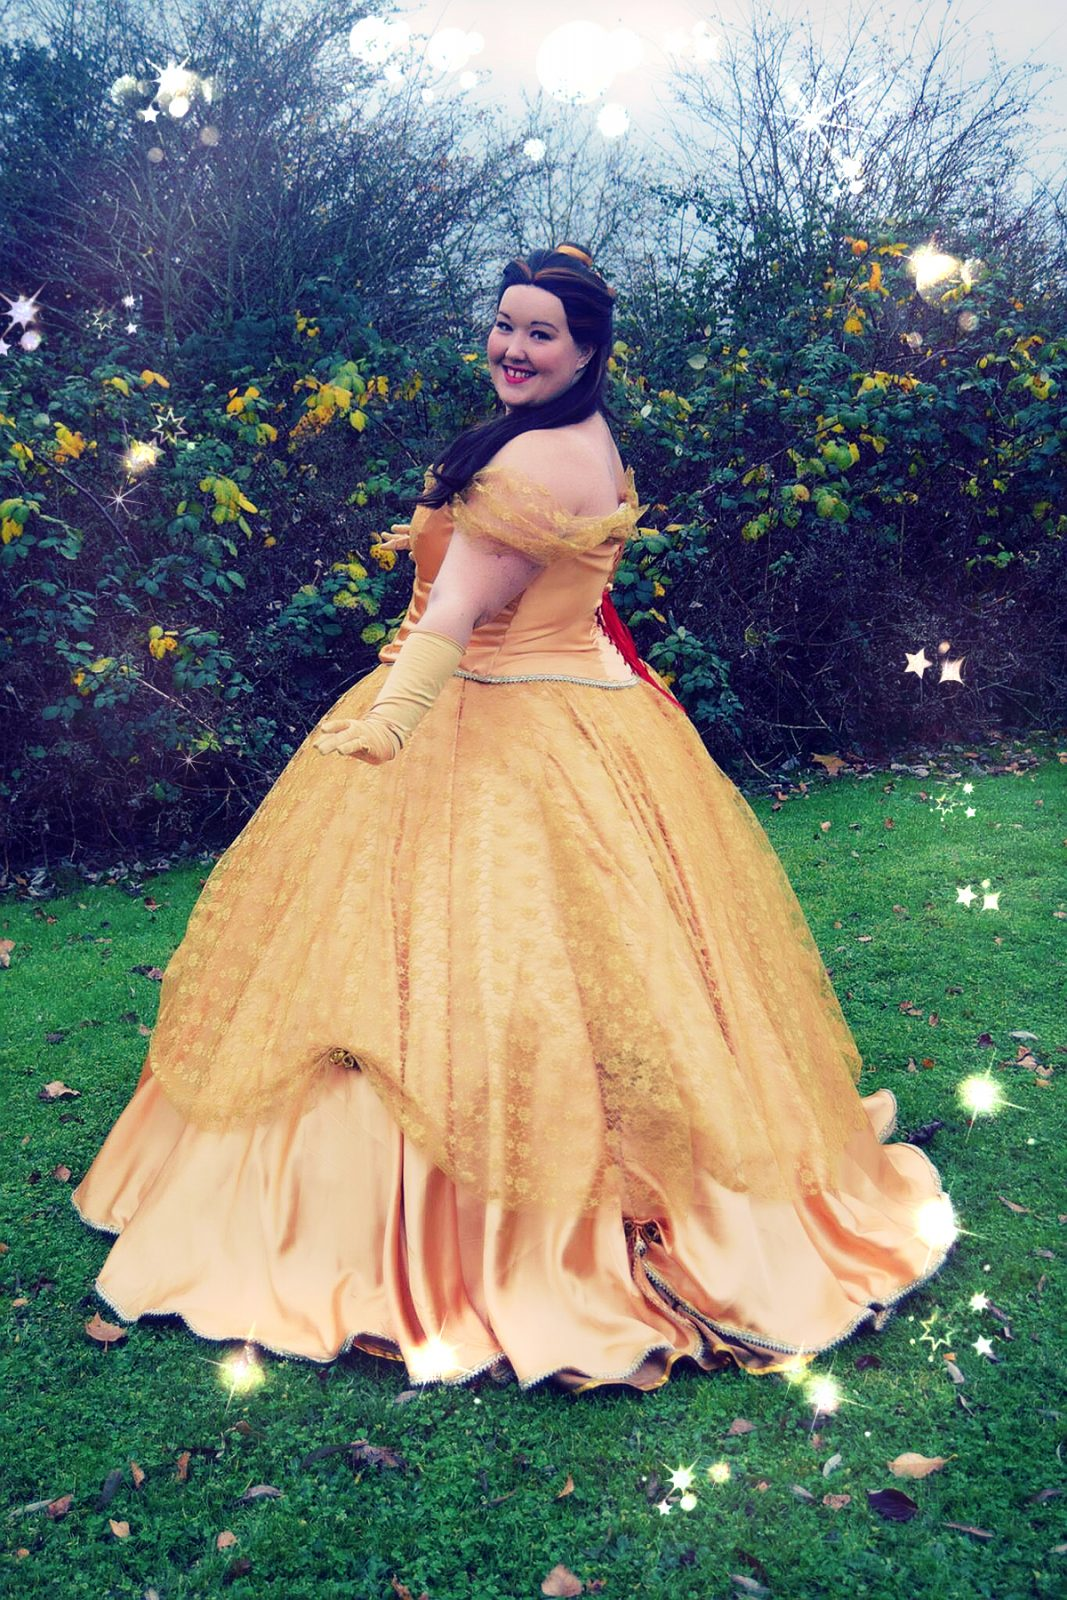 Belle's Ball Gown made with Lace and Ribbon